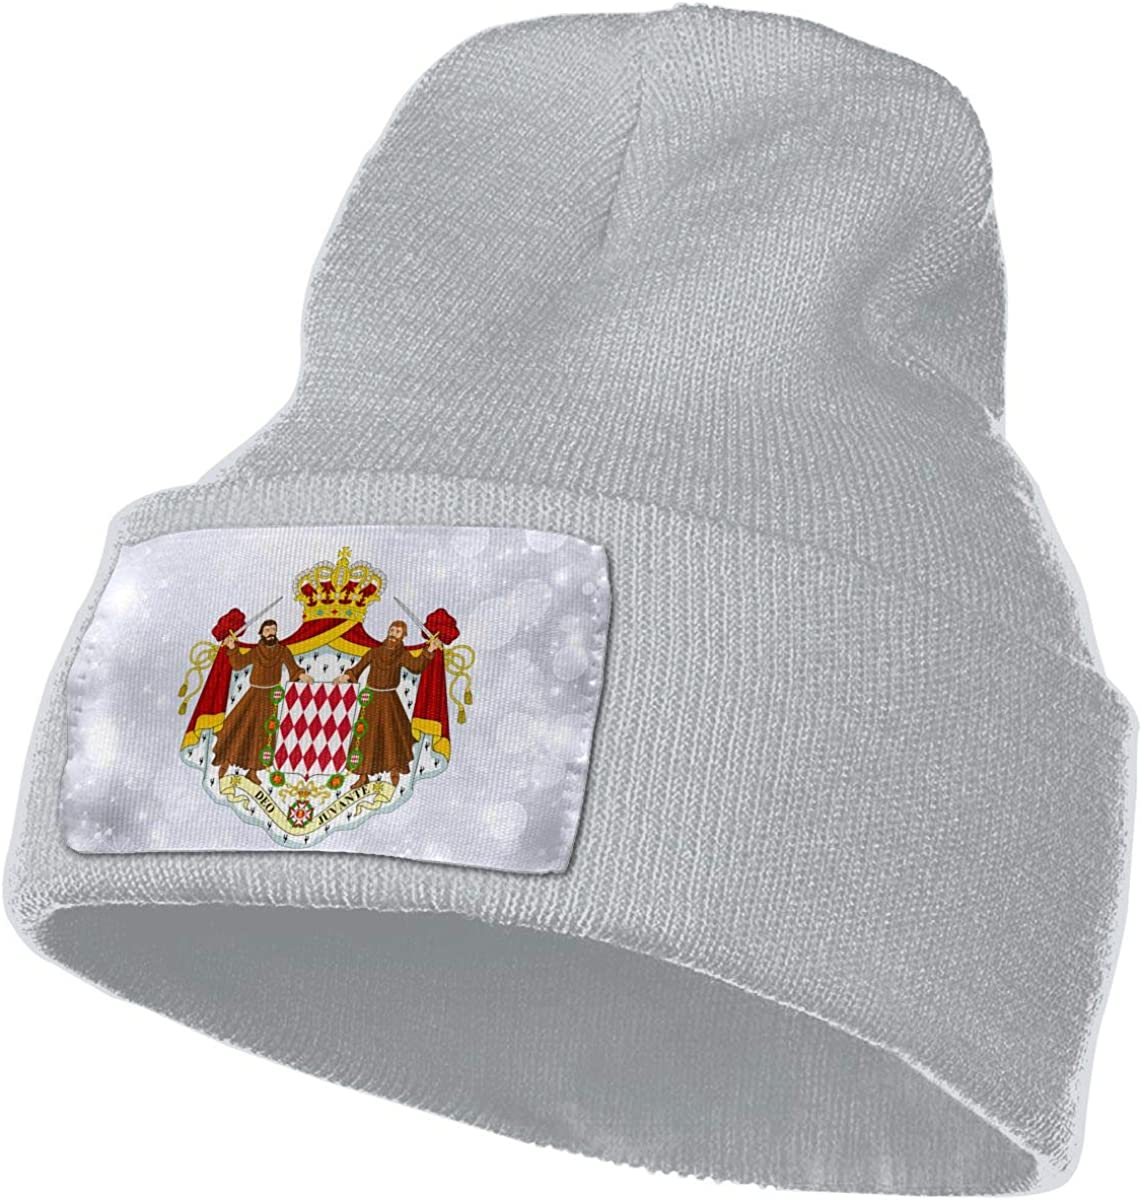 JimHappy Coat of Arms of Monaco Hat for Men and Women Winter Warm Hats Knit Slouchy Thick Skull Cap